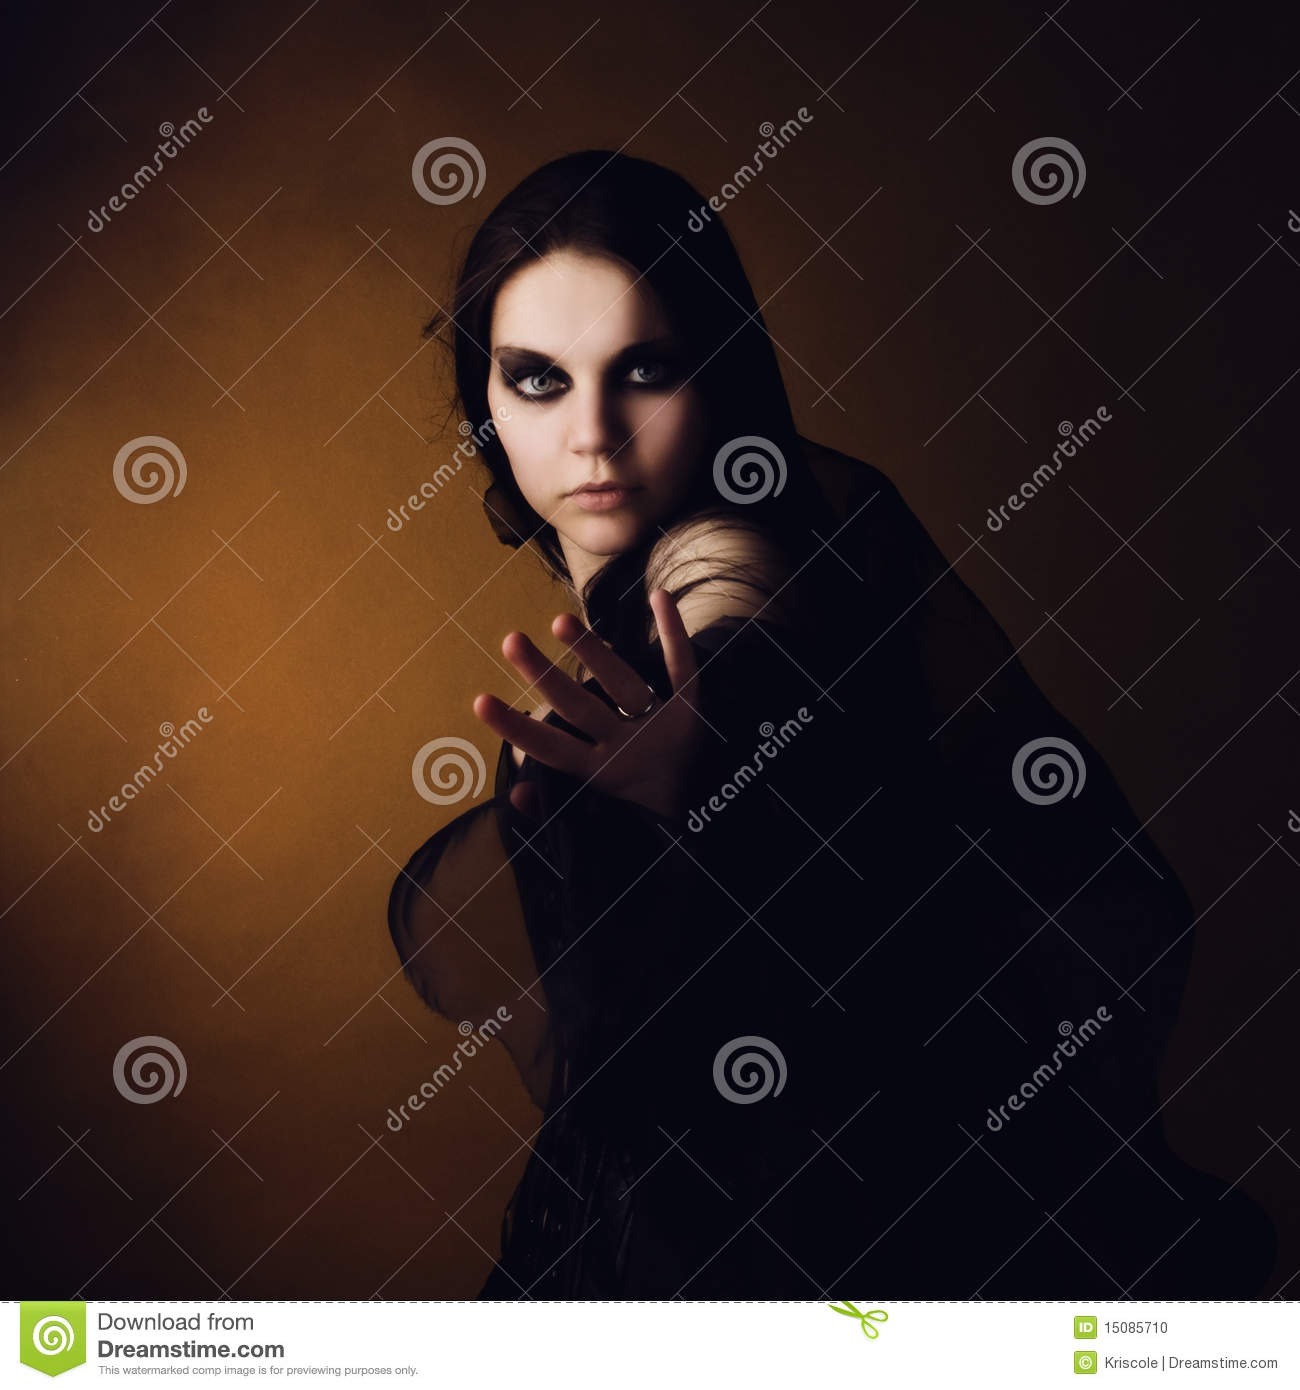 Girl in an image of a witch